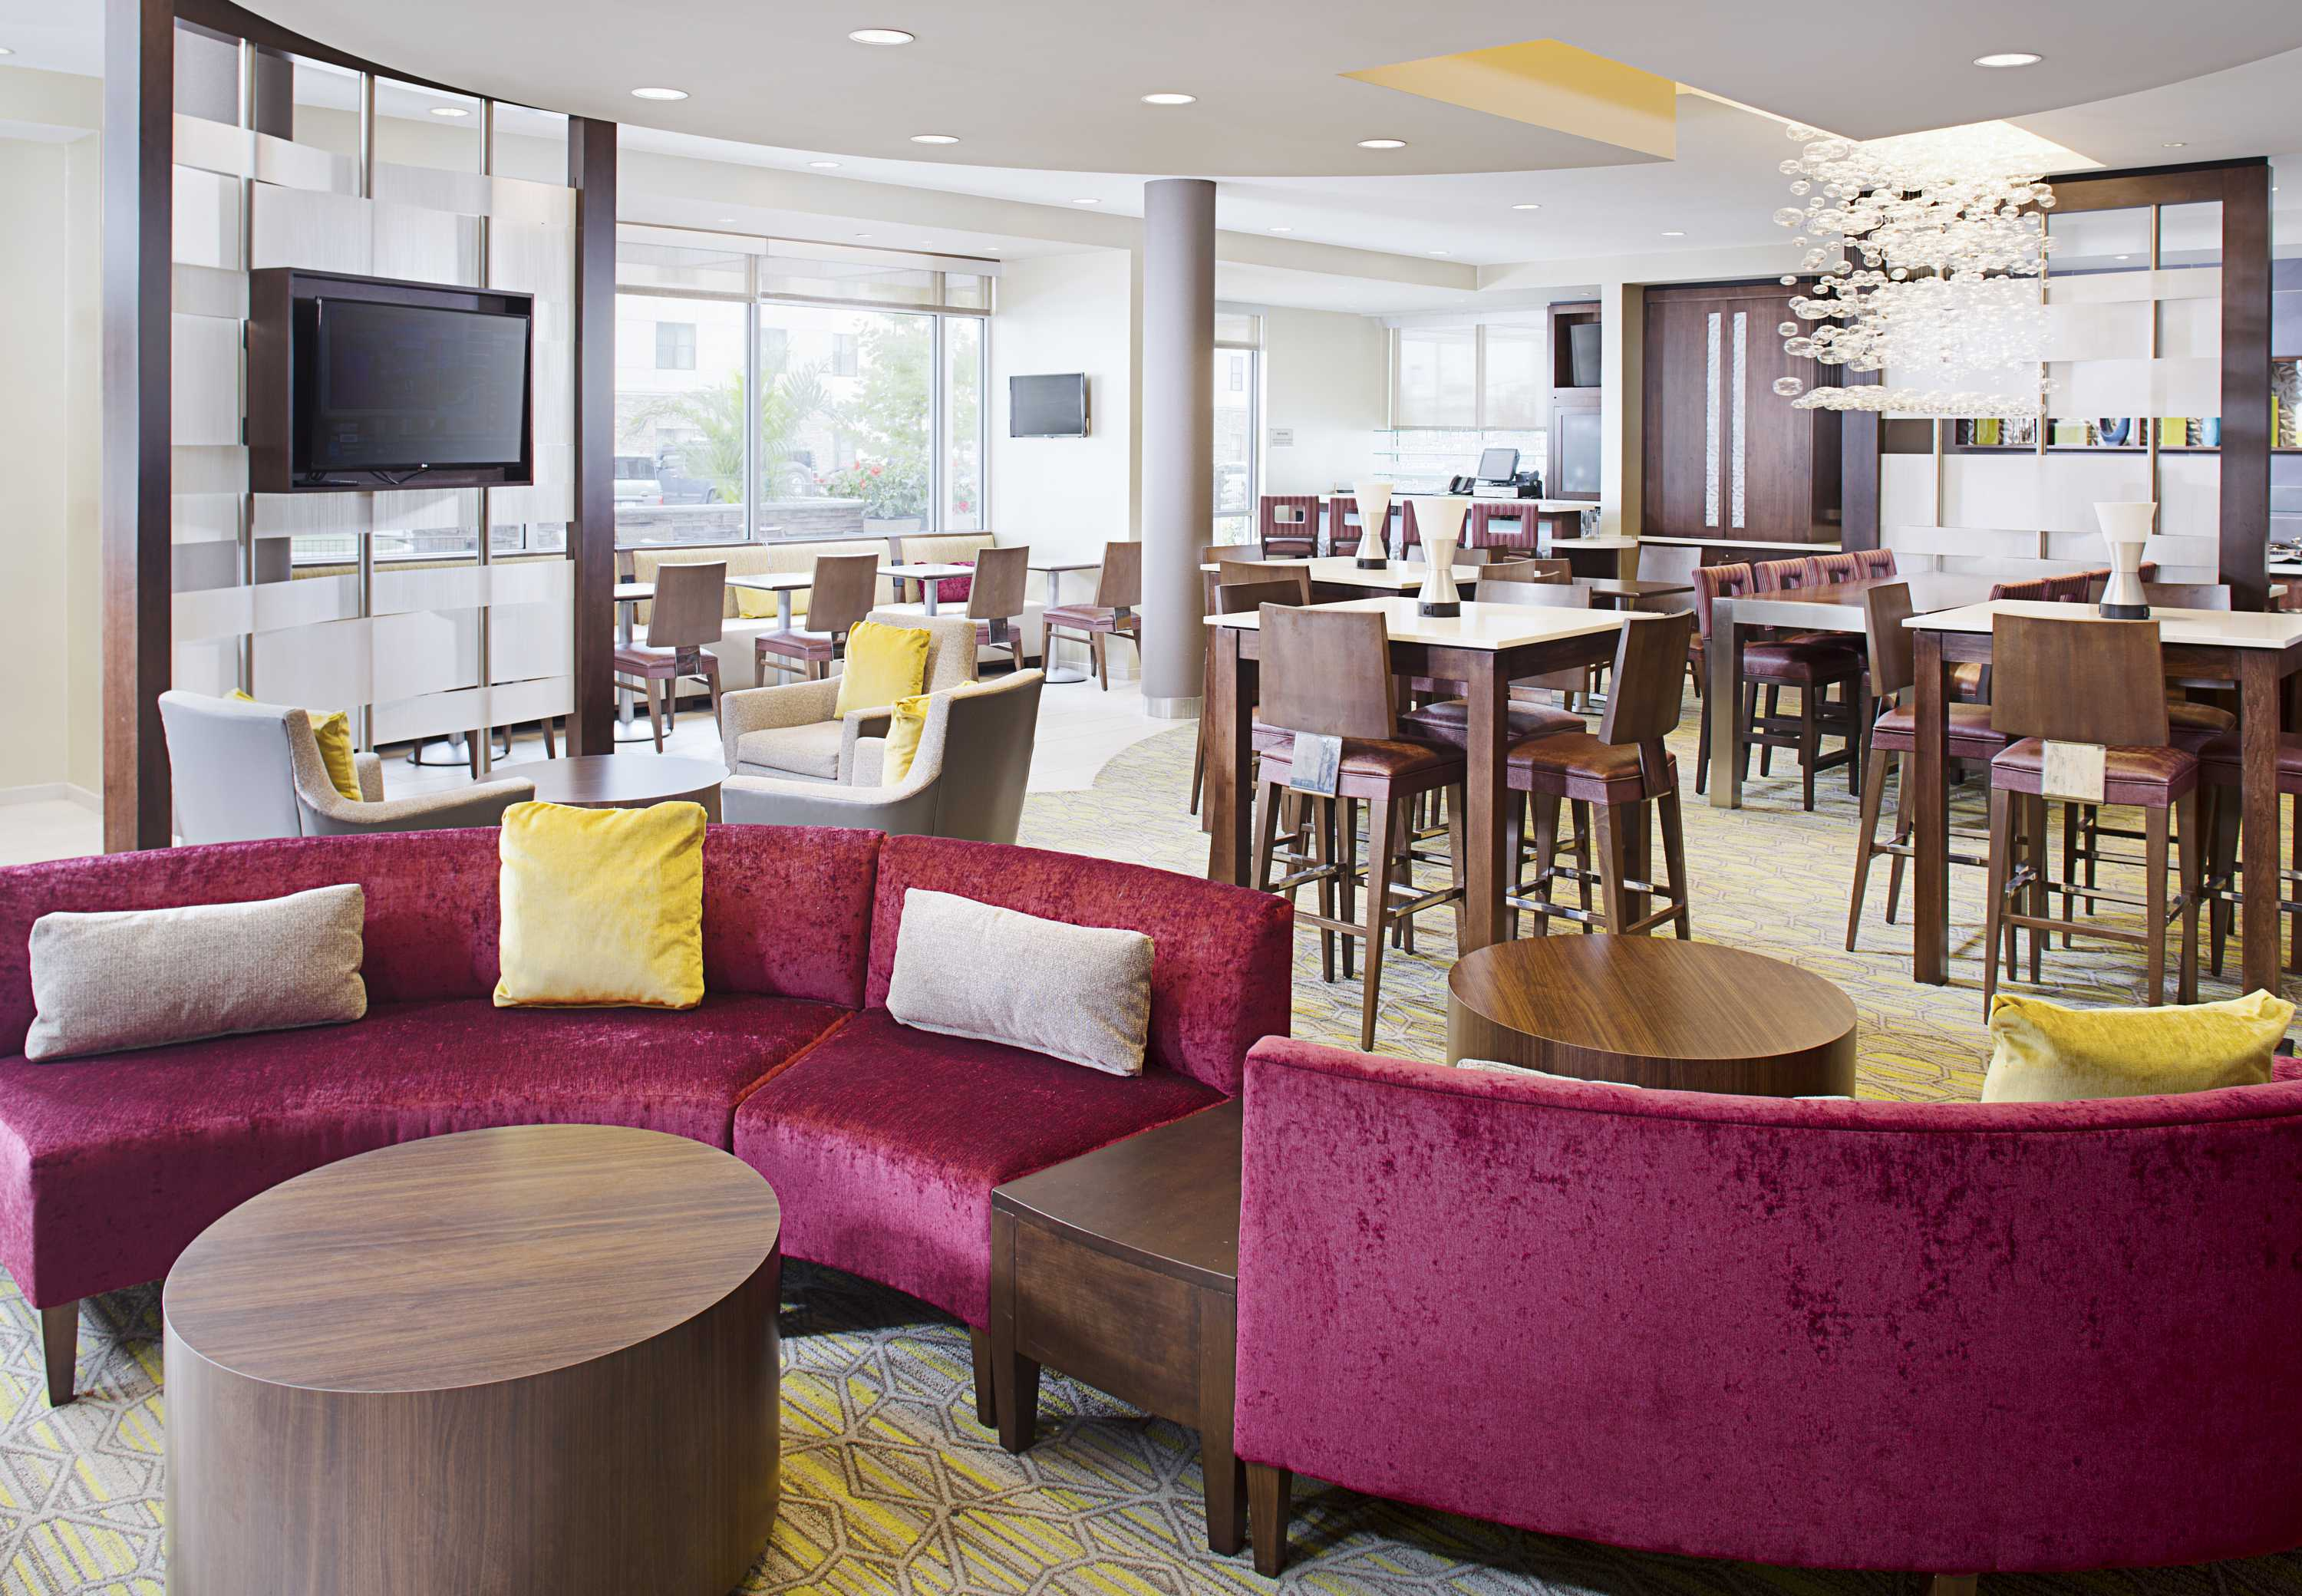 Springhill Suites By Marriott Carle Place Garden City Carle Place New York